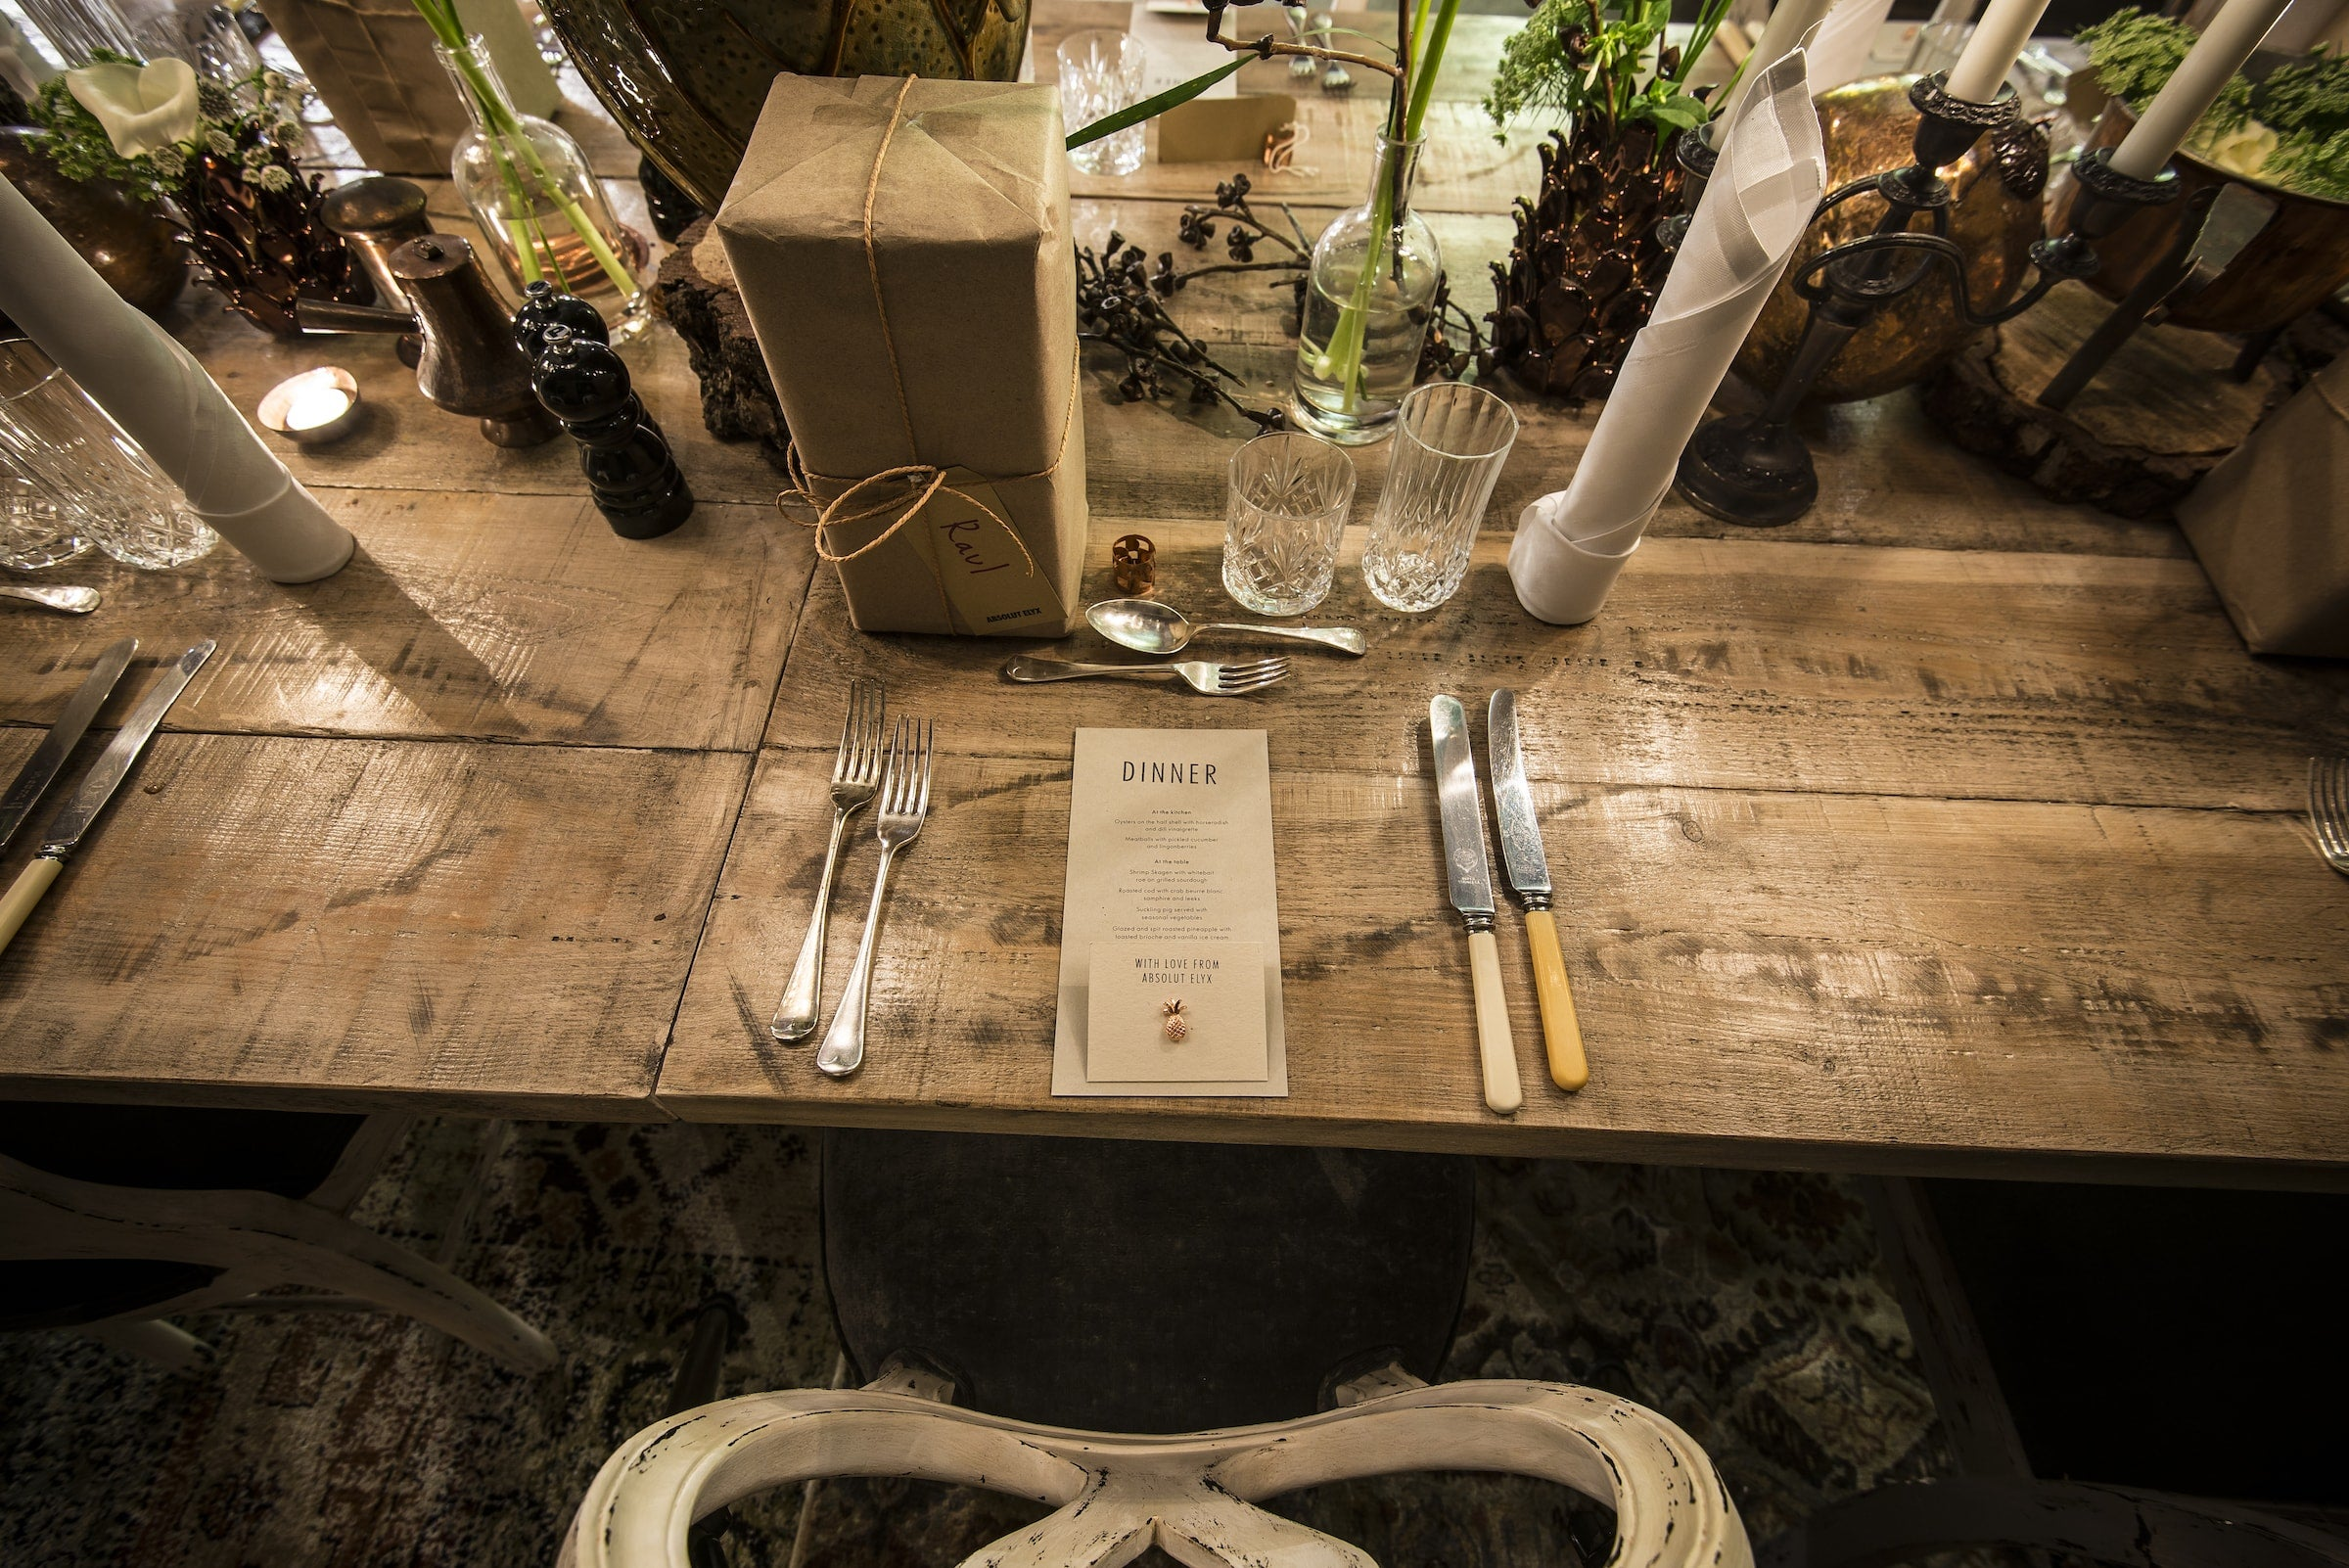 Menu and gift at the Blacksmith dinner